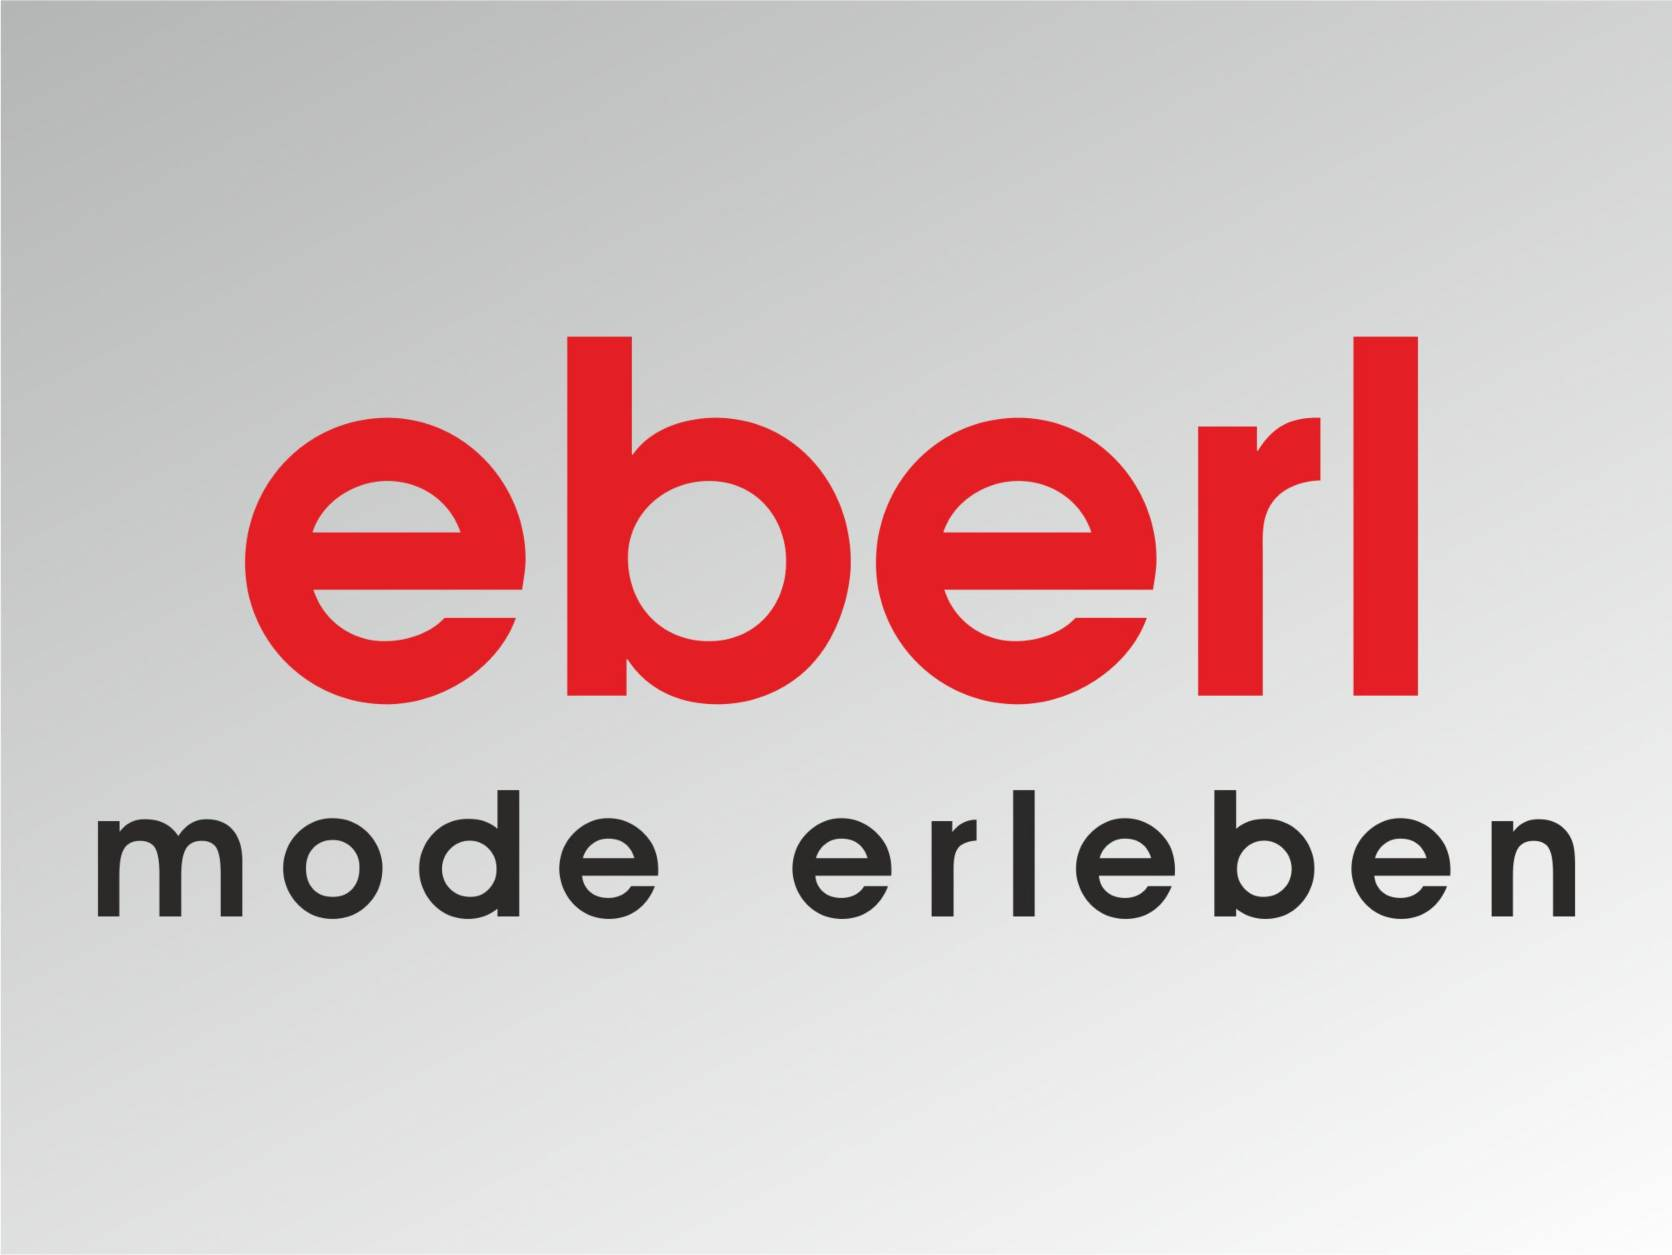 Eberl Mode